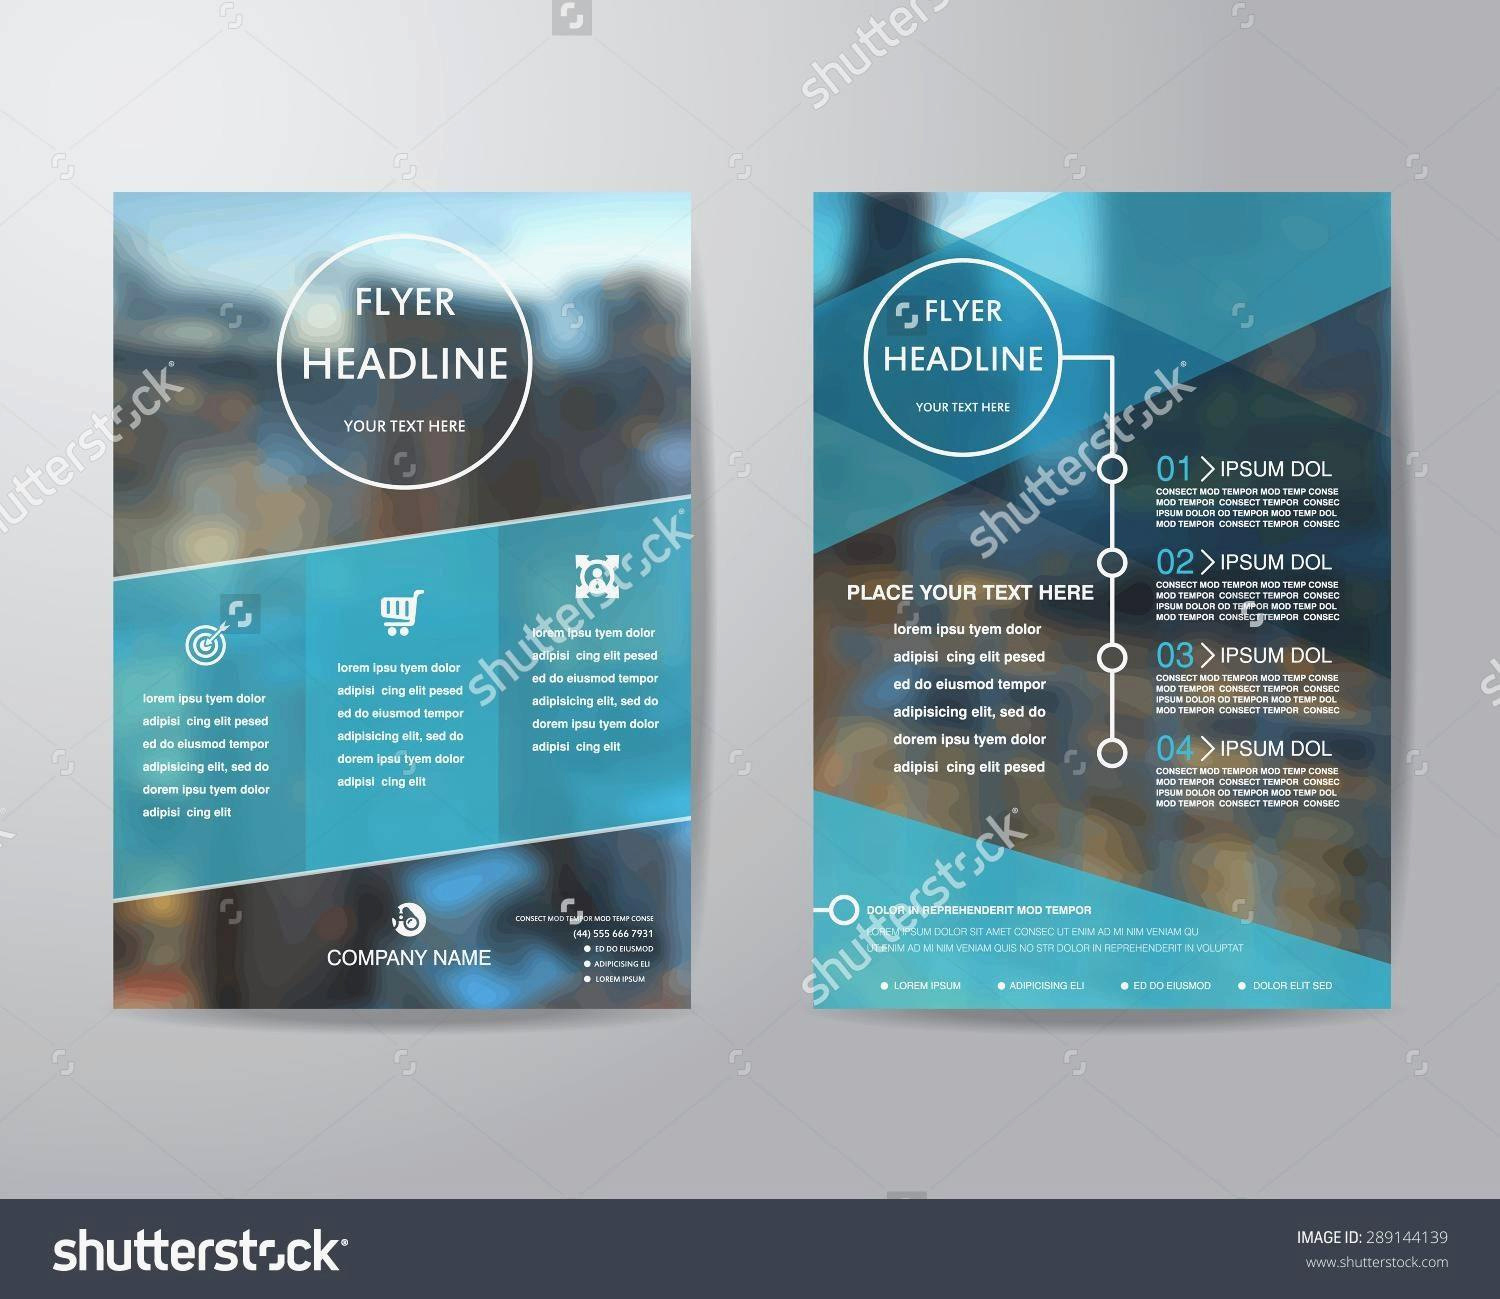 Best Powerpoint Templates Free Download Beautiful Ppt Brochure Templates Free New Best Ppt Background